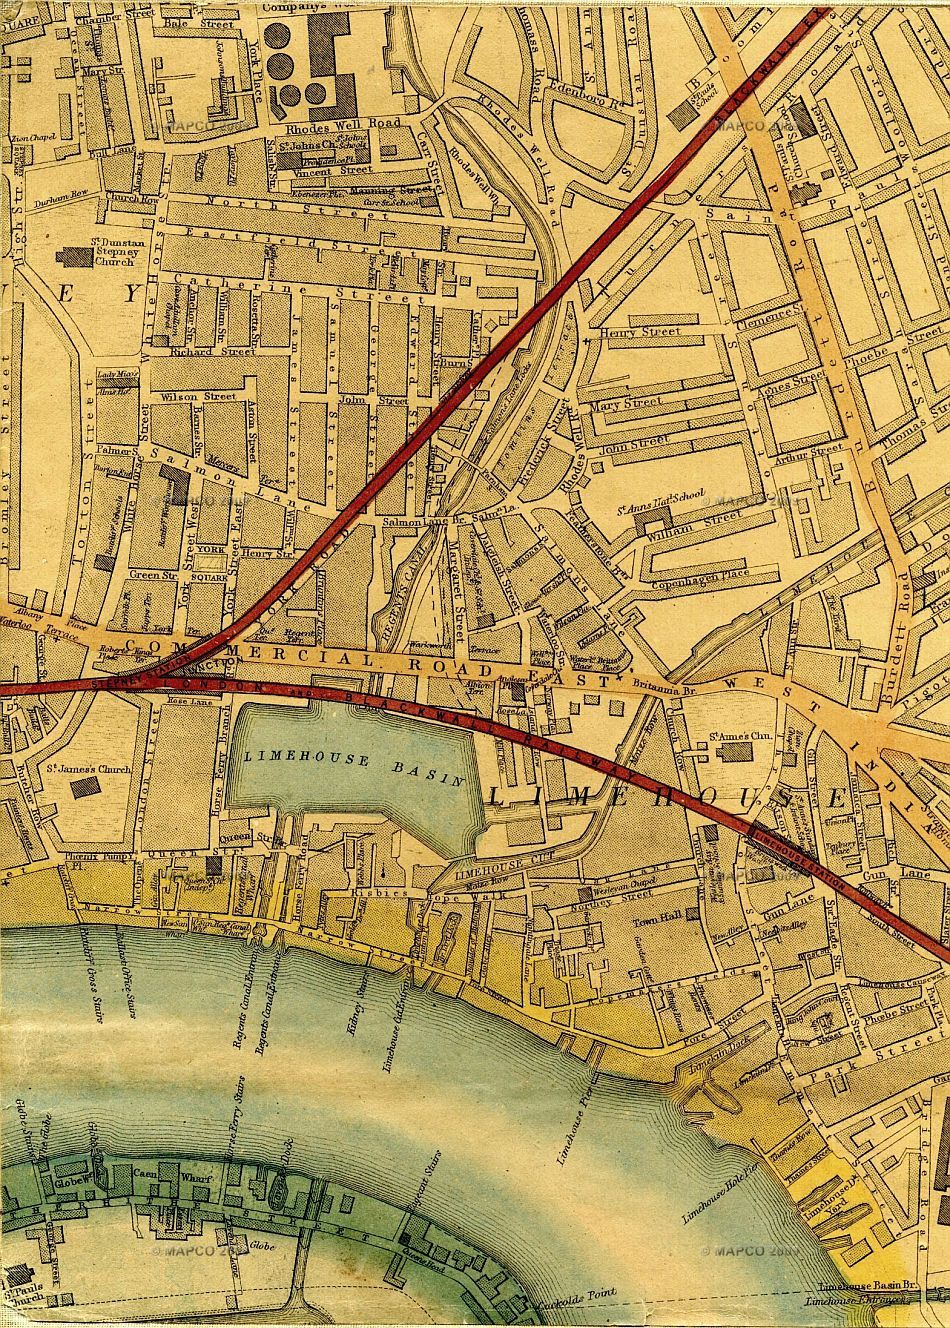 Map Of London 1868, By Edward Weller, F.R.G.S.